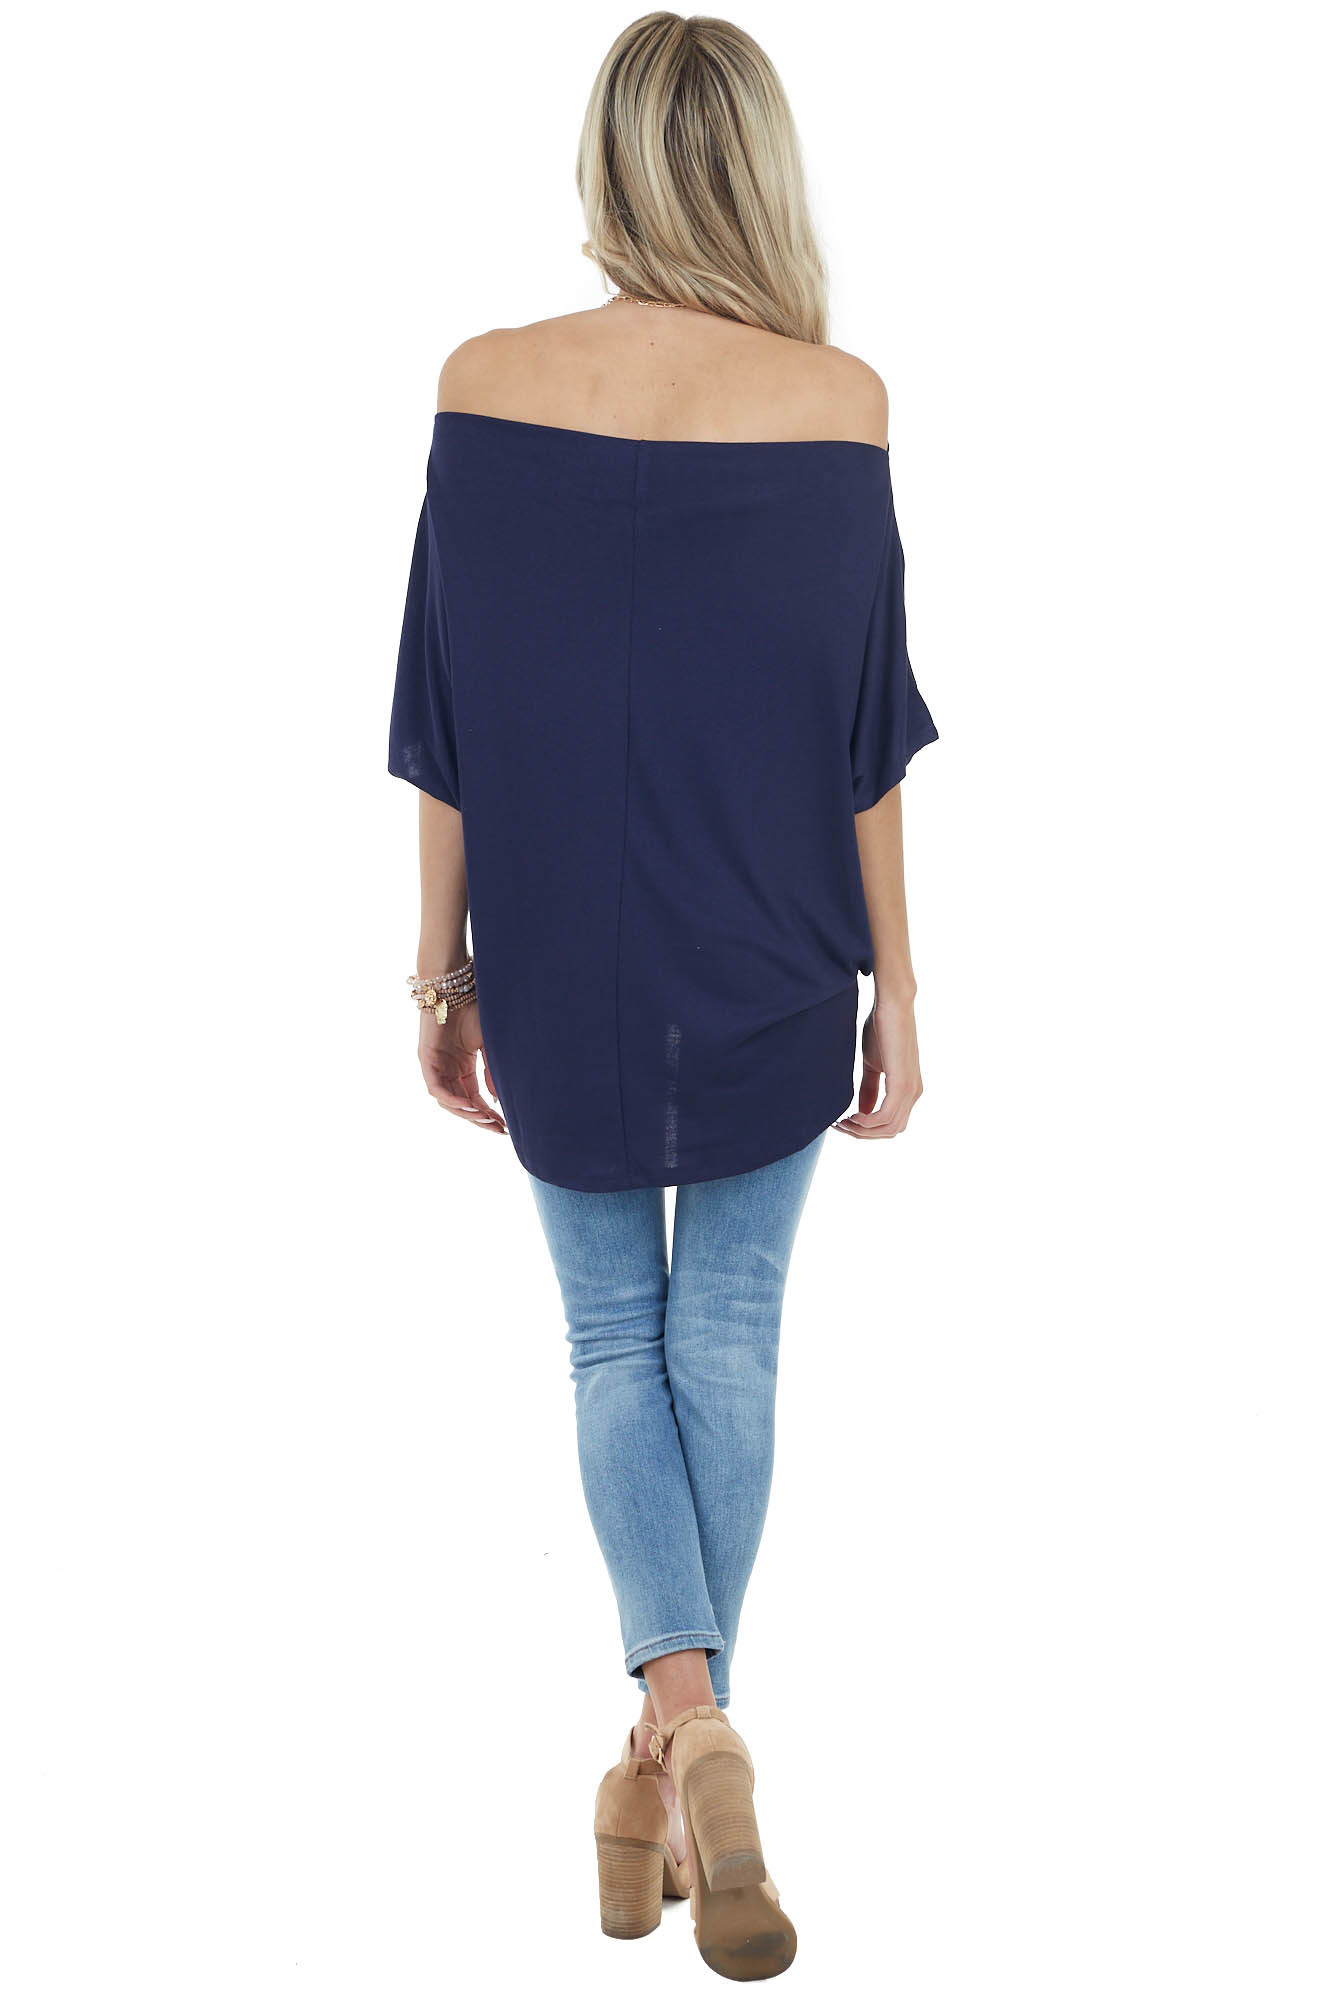 Navy Short Sleeve Off the Shoulder Top with Twisted Front